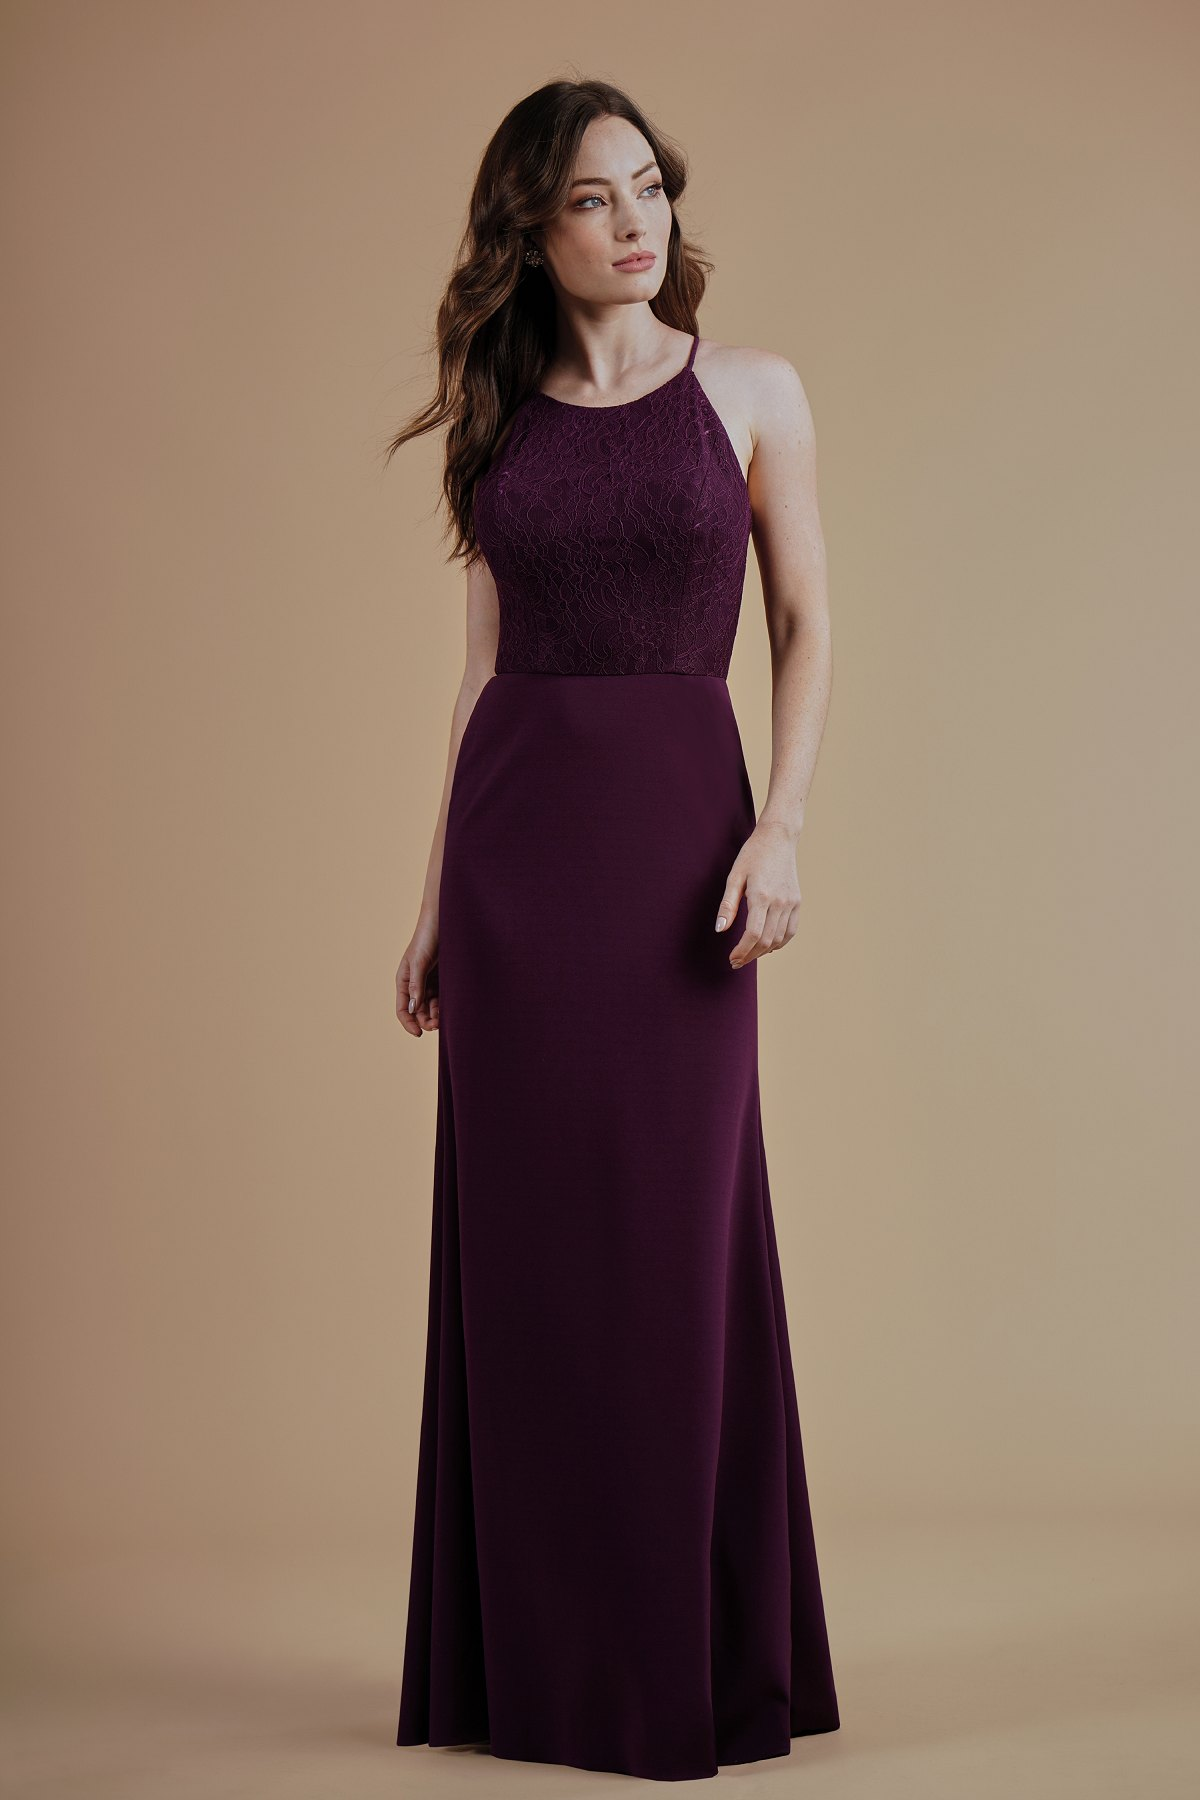 L214015 -  Simple lace and stretch crepe floor length bridesmaid dress with a jewel neckline and high neck back. This simple, pretty bridesmaid dress is perfect for a minimalist wedding.    Available in 21 colors